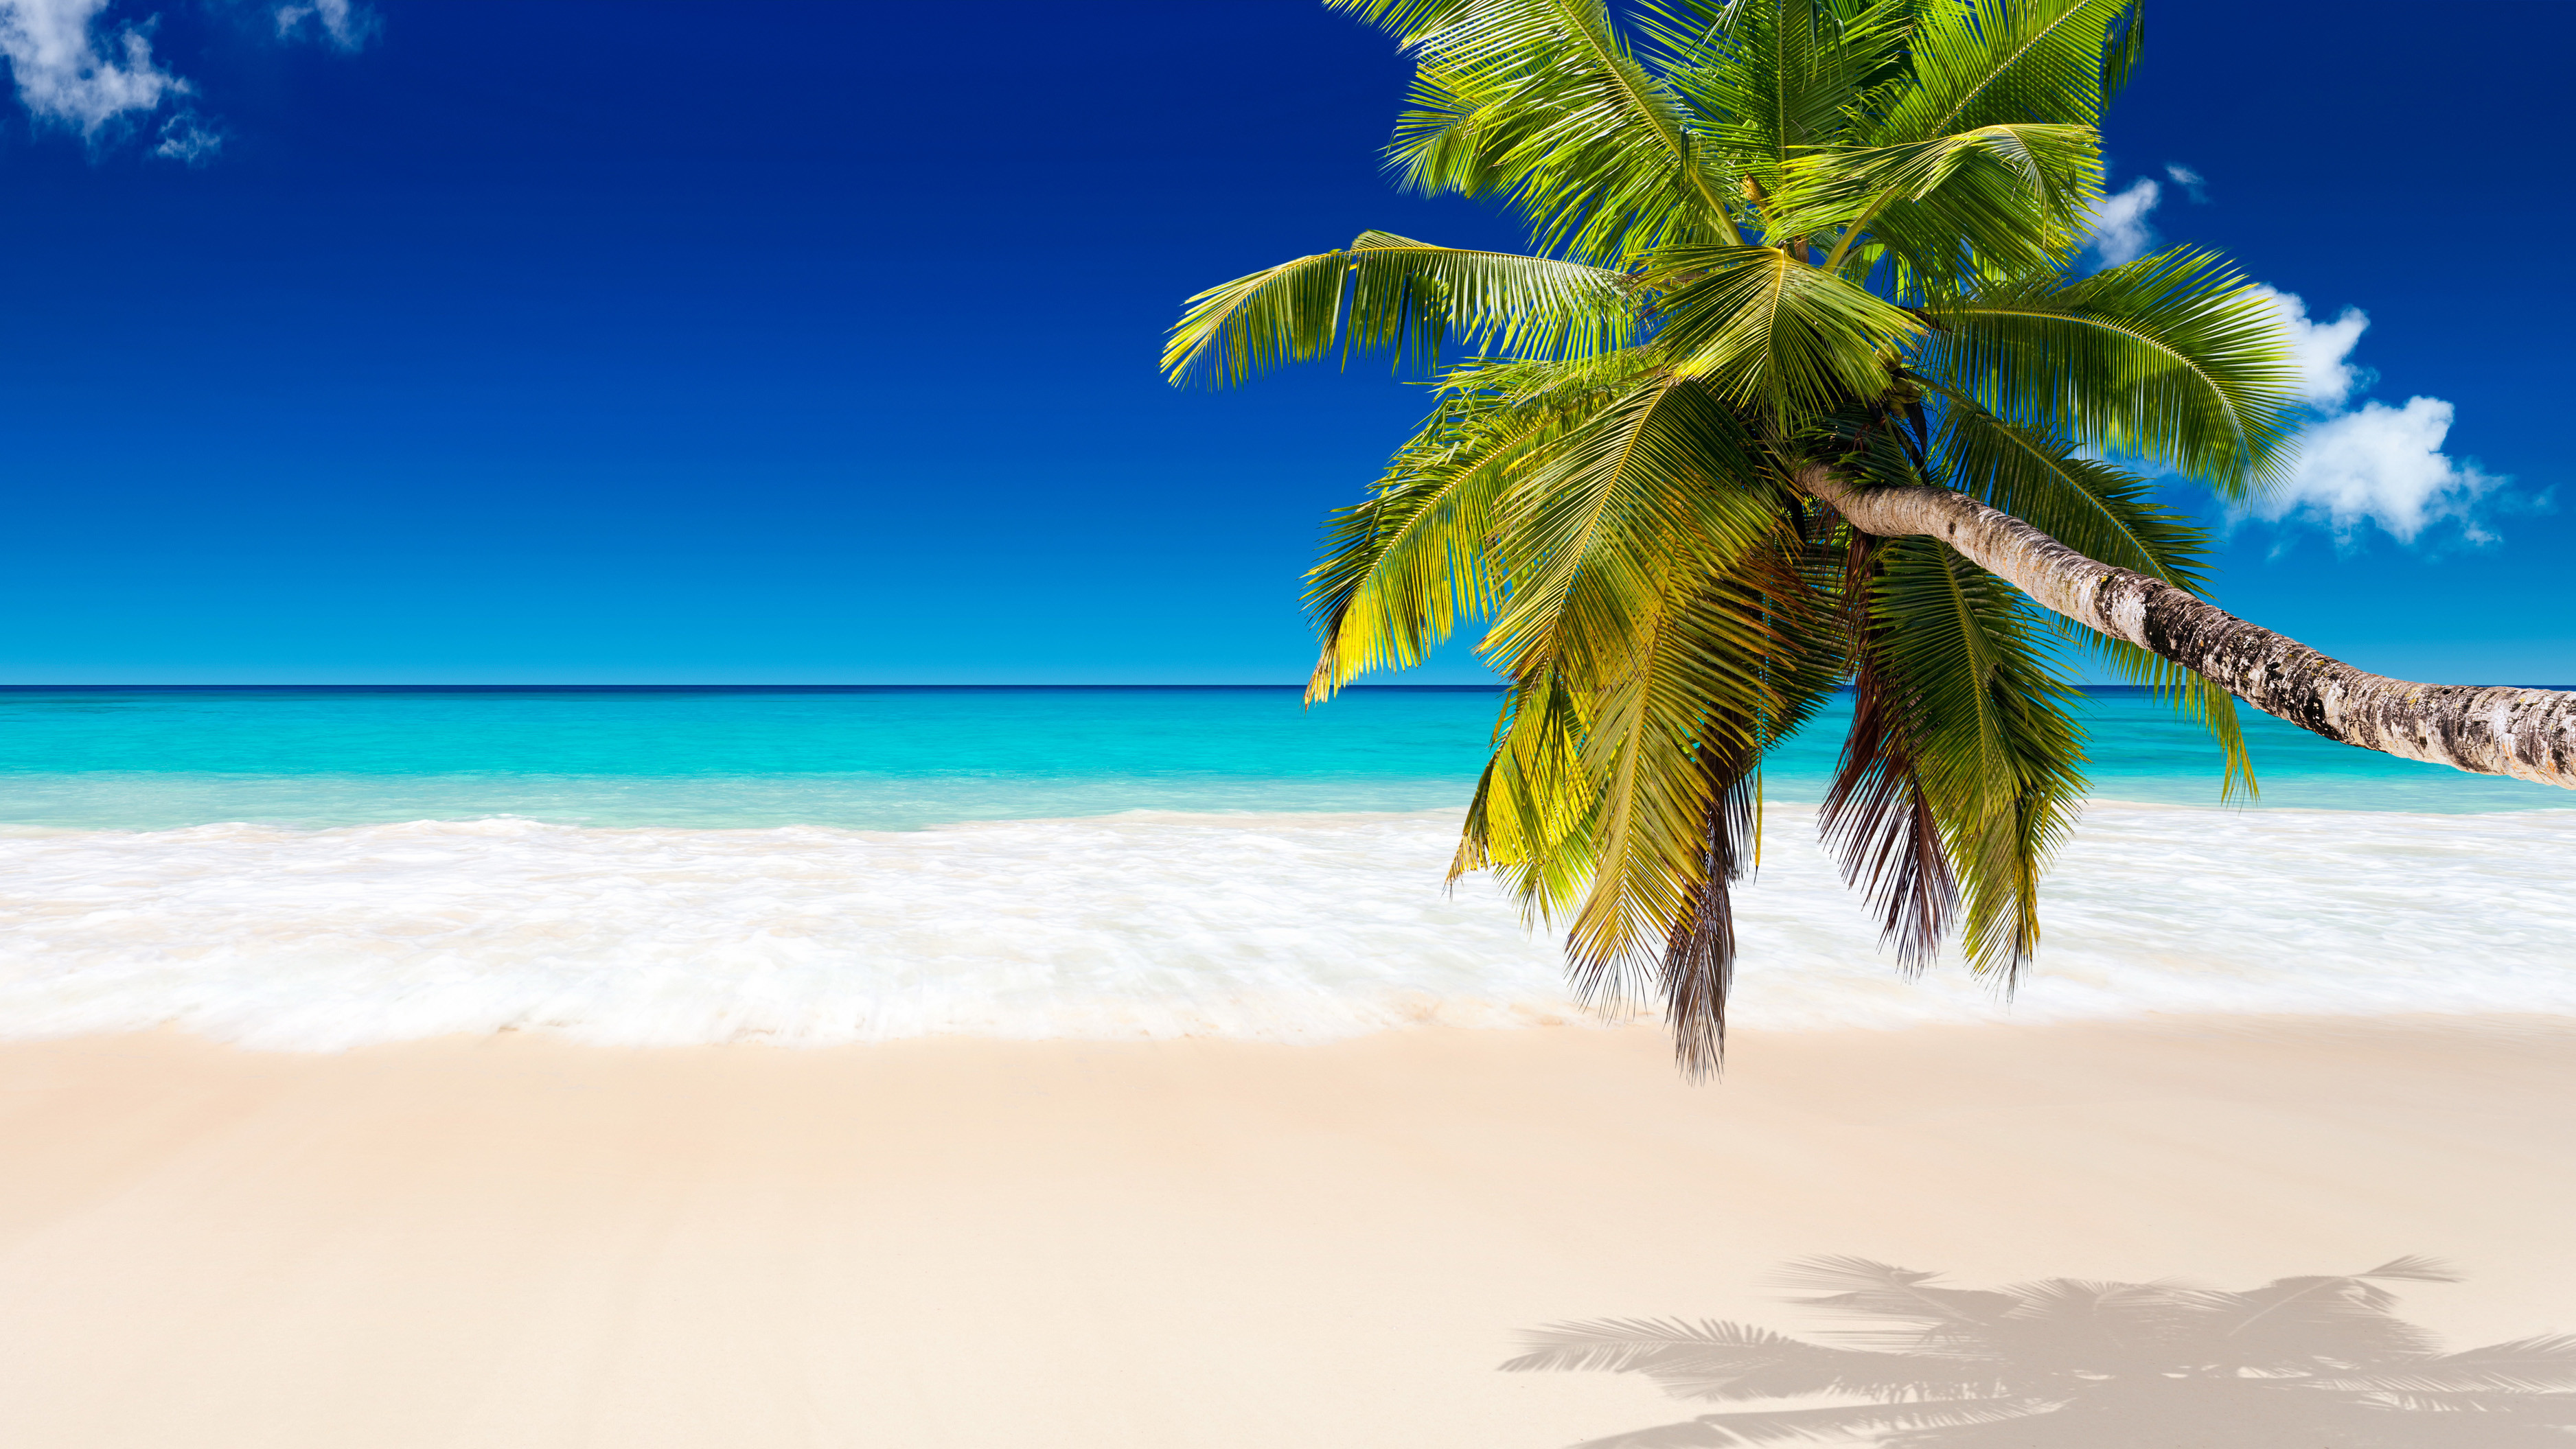 tropical beach background images #136